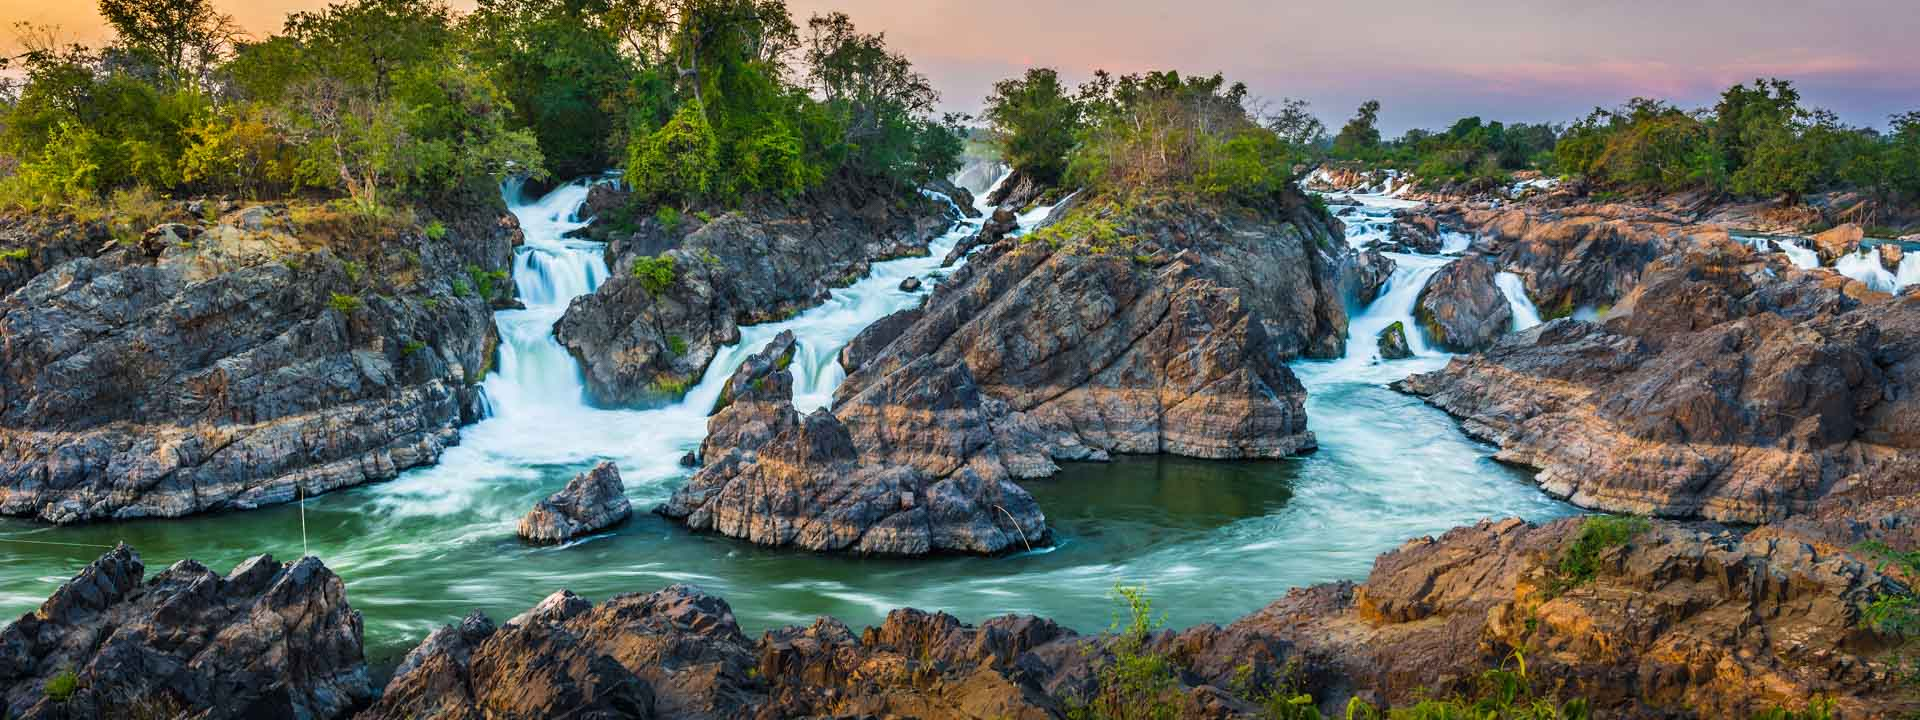 Exotic Vietnam Laos Cambodia Tour Package 7 days